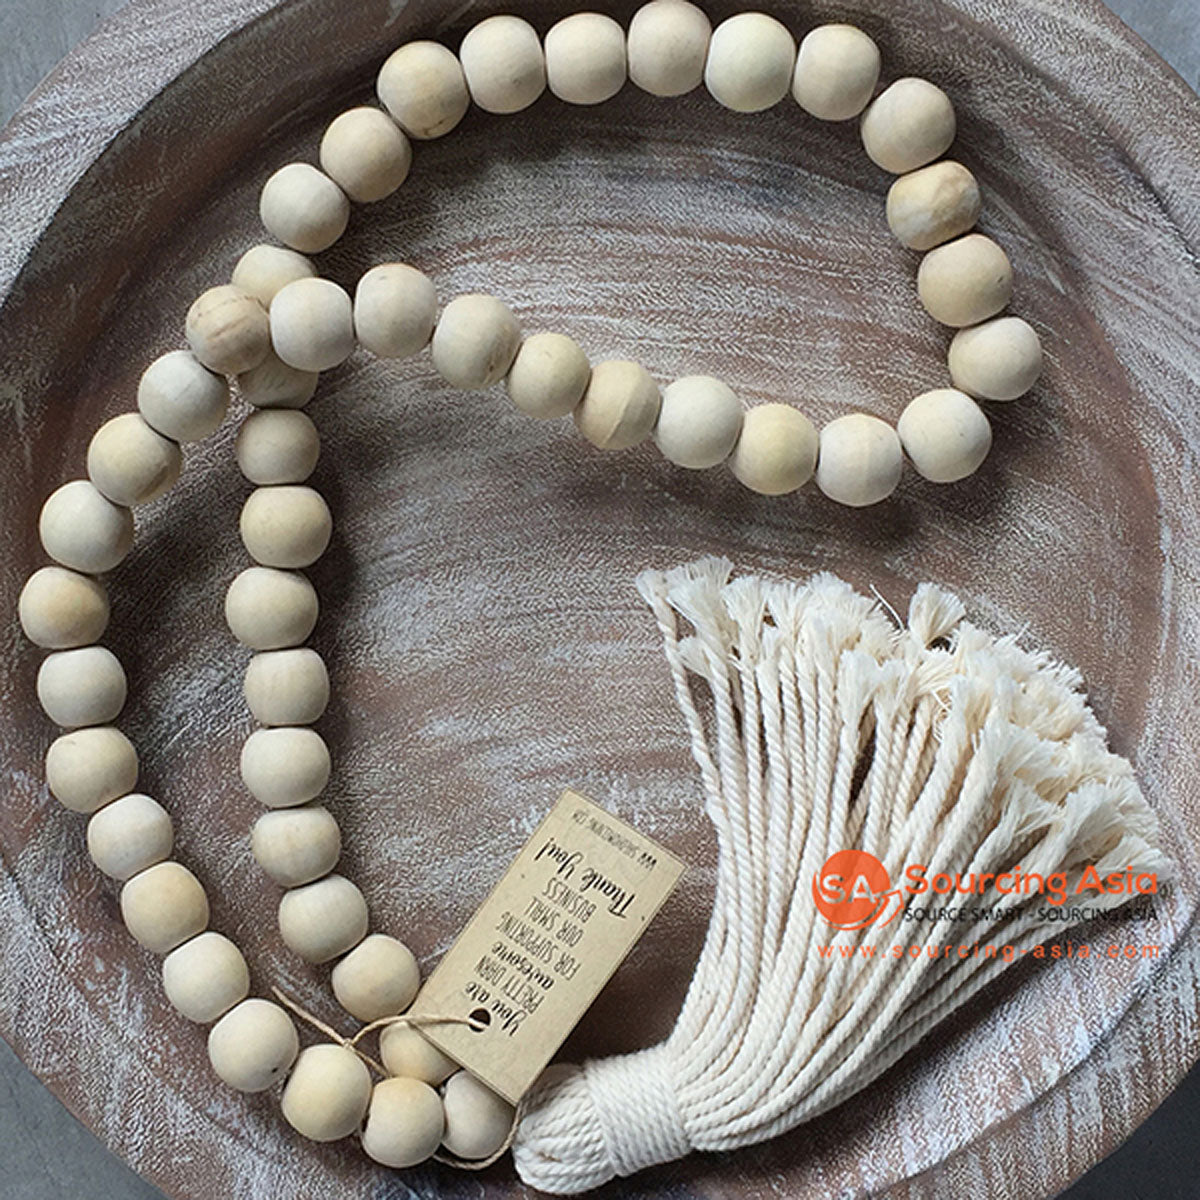 SHL047-2 NATURAL TIMBER BEADS DECORATIVE TASSEL WITH MACRAME YARN